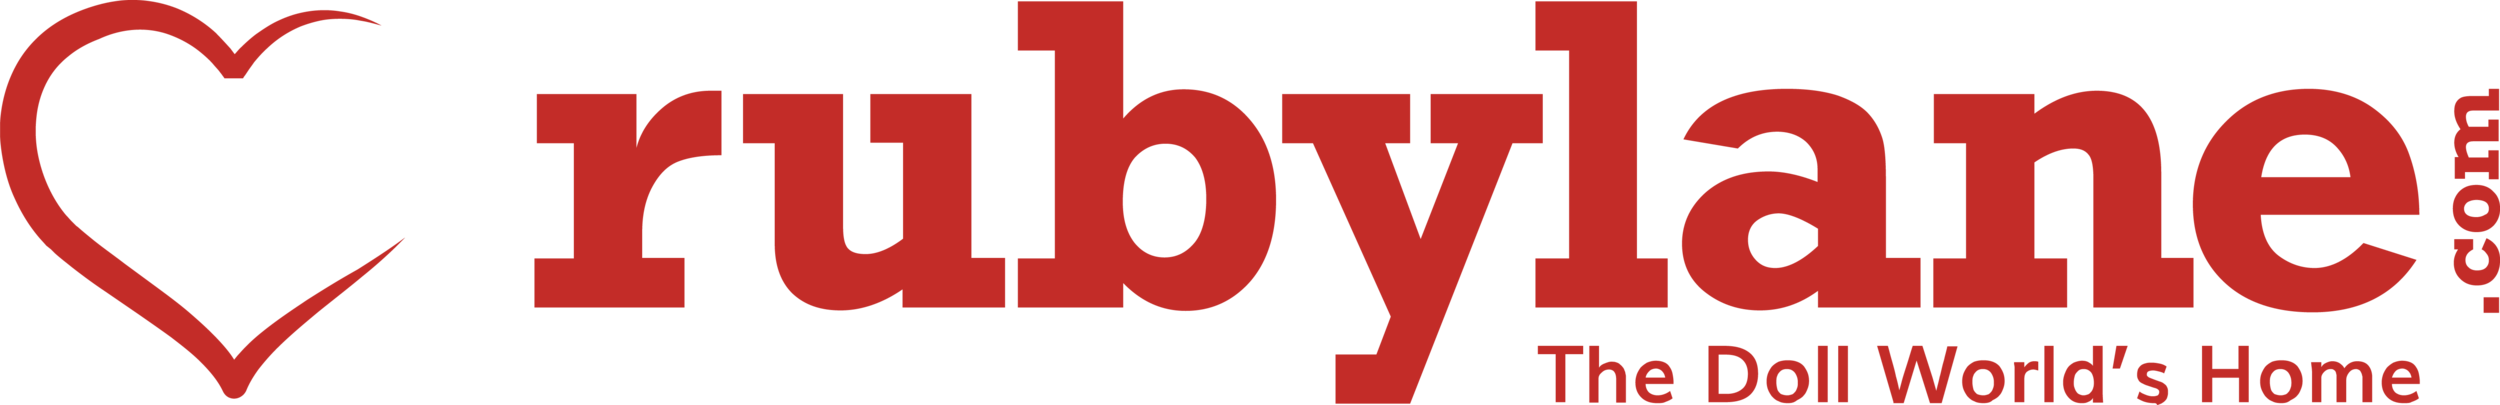 Special thanks to our lead sponsor, Ruby Lane!